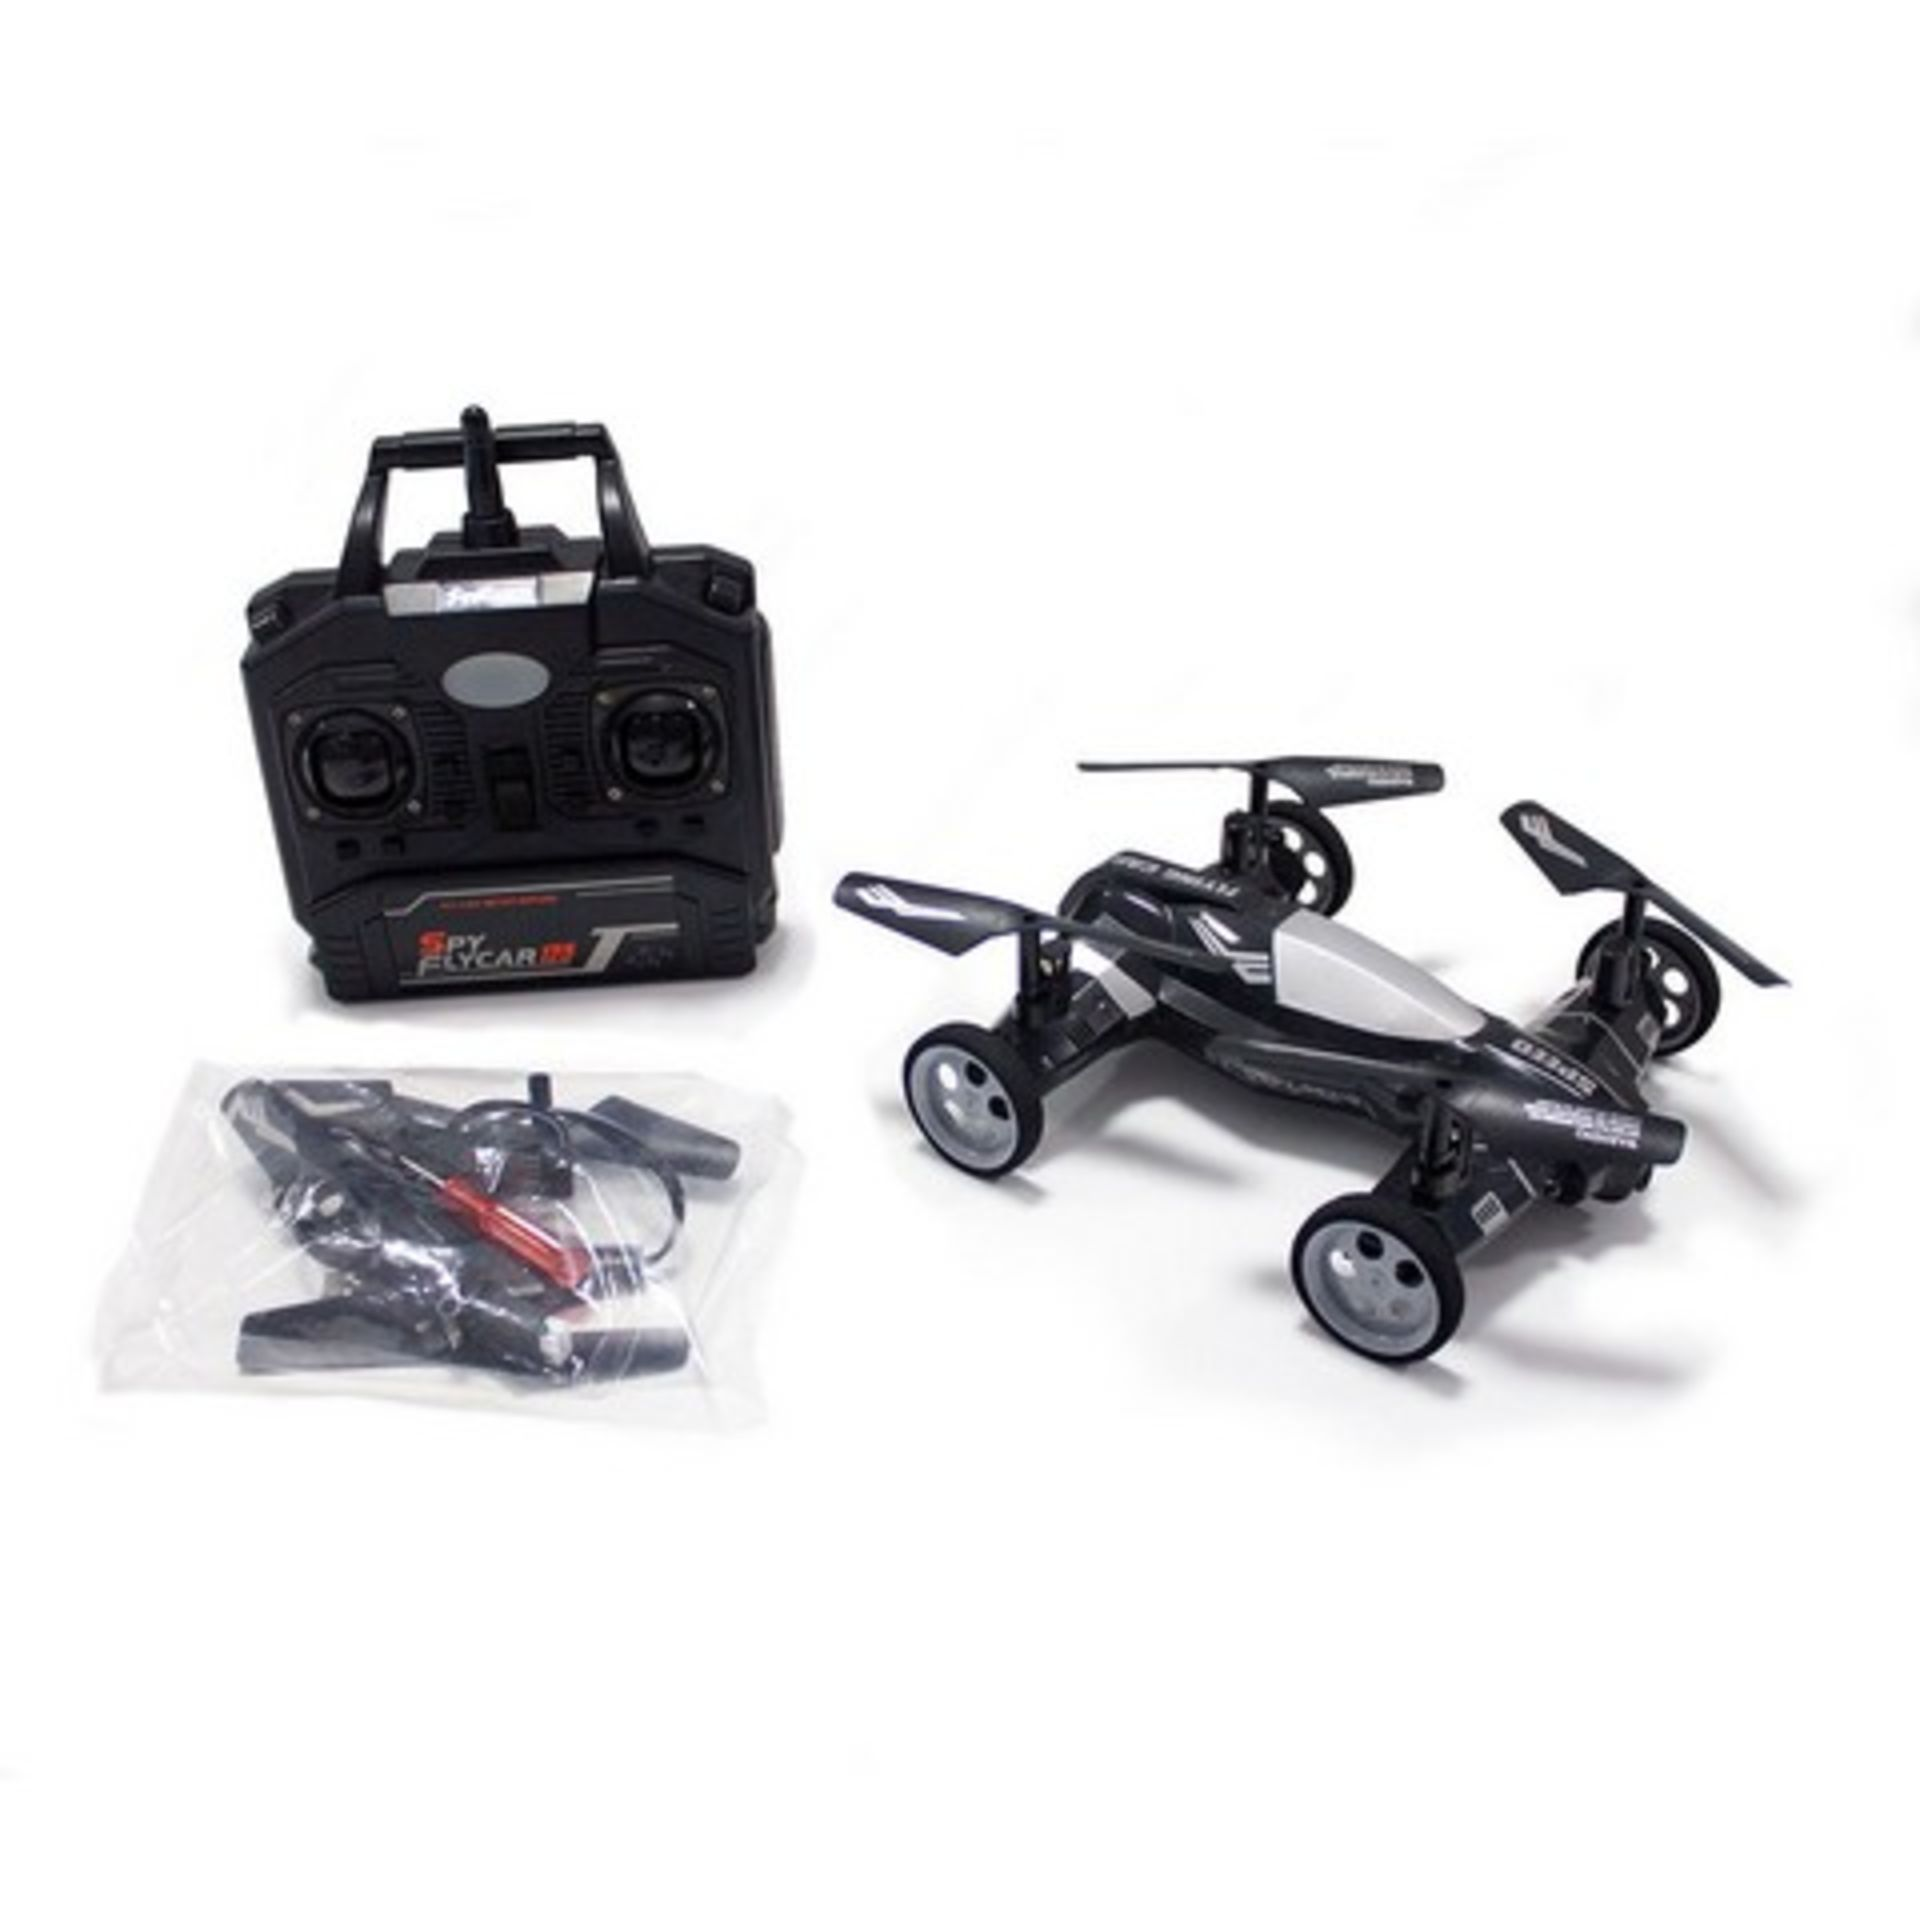 Lot 51662 - V Brand New Radio Control Quad-Copter Orbit Moon Buggy - 720P HD Camera - 4GB Micro SD Card Included